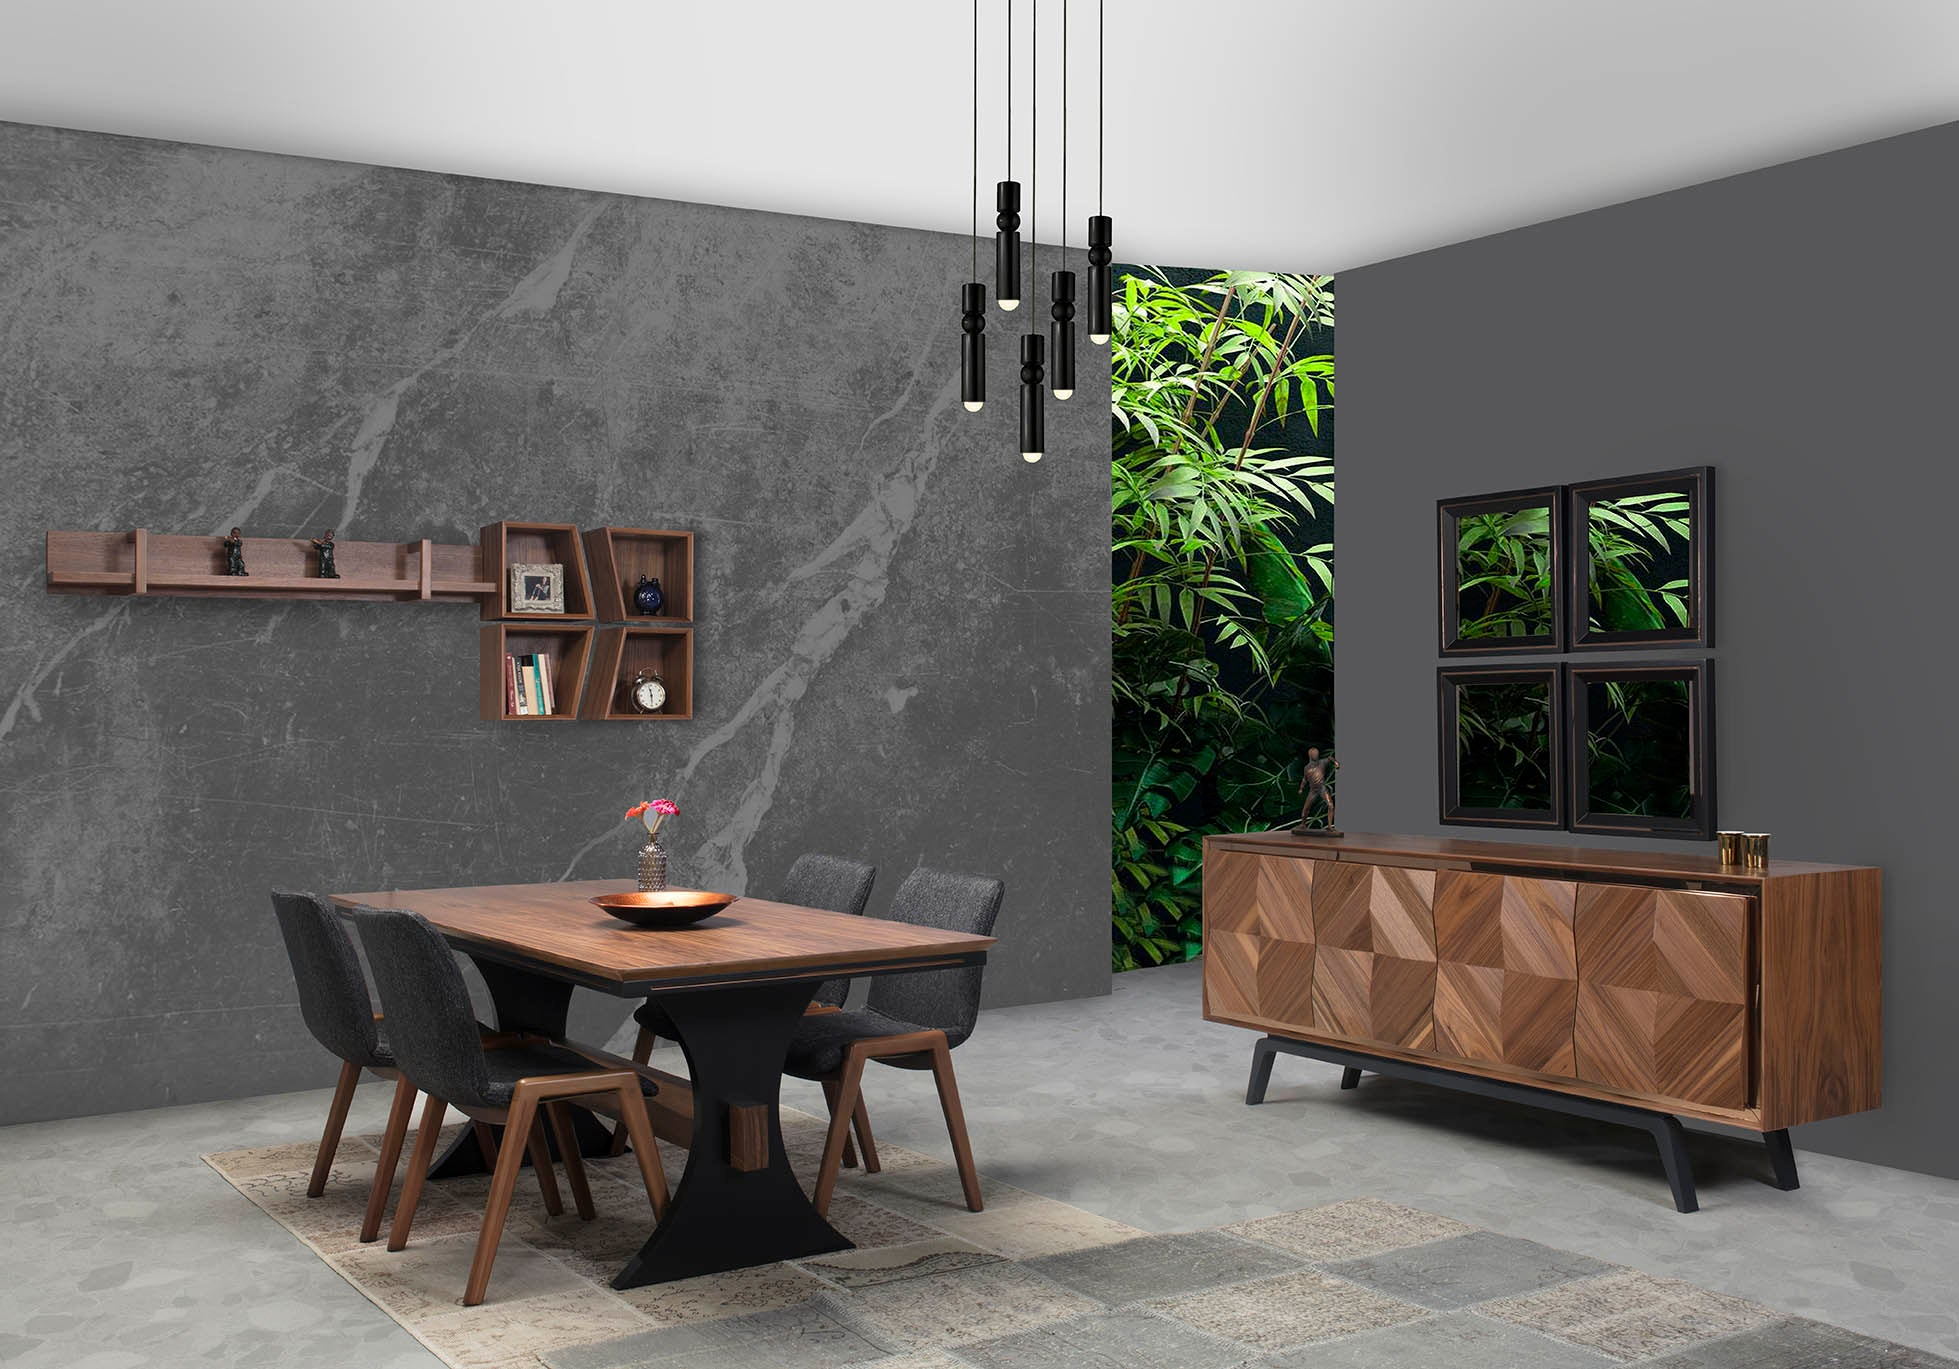 PİRAMİT Dining room